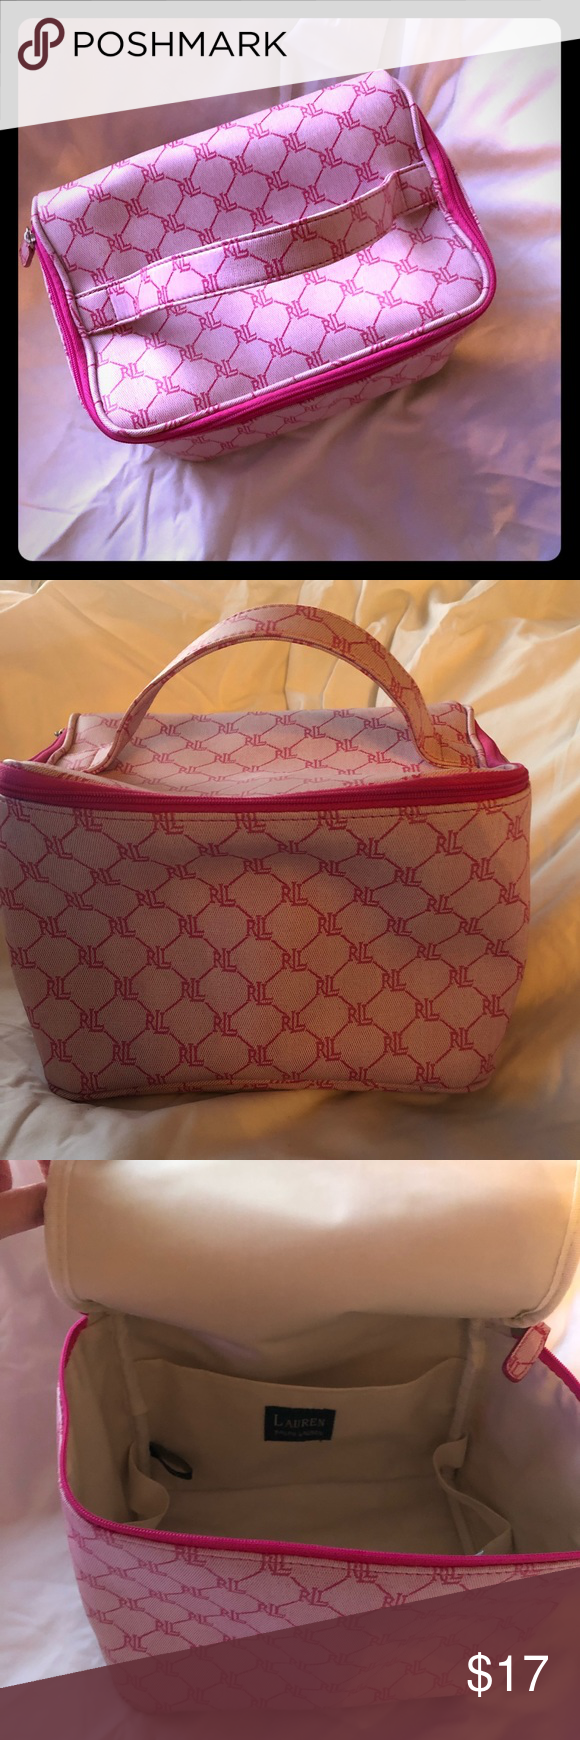 2dd691e4c1 Adorable Pink Ralph Lauren Insulated Lunch Tote This classy Ralph Lauren  insulated lunch bag will make you the talk of the lunch table.